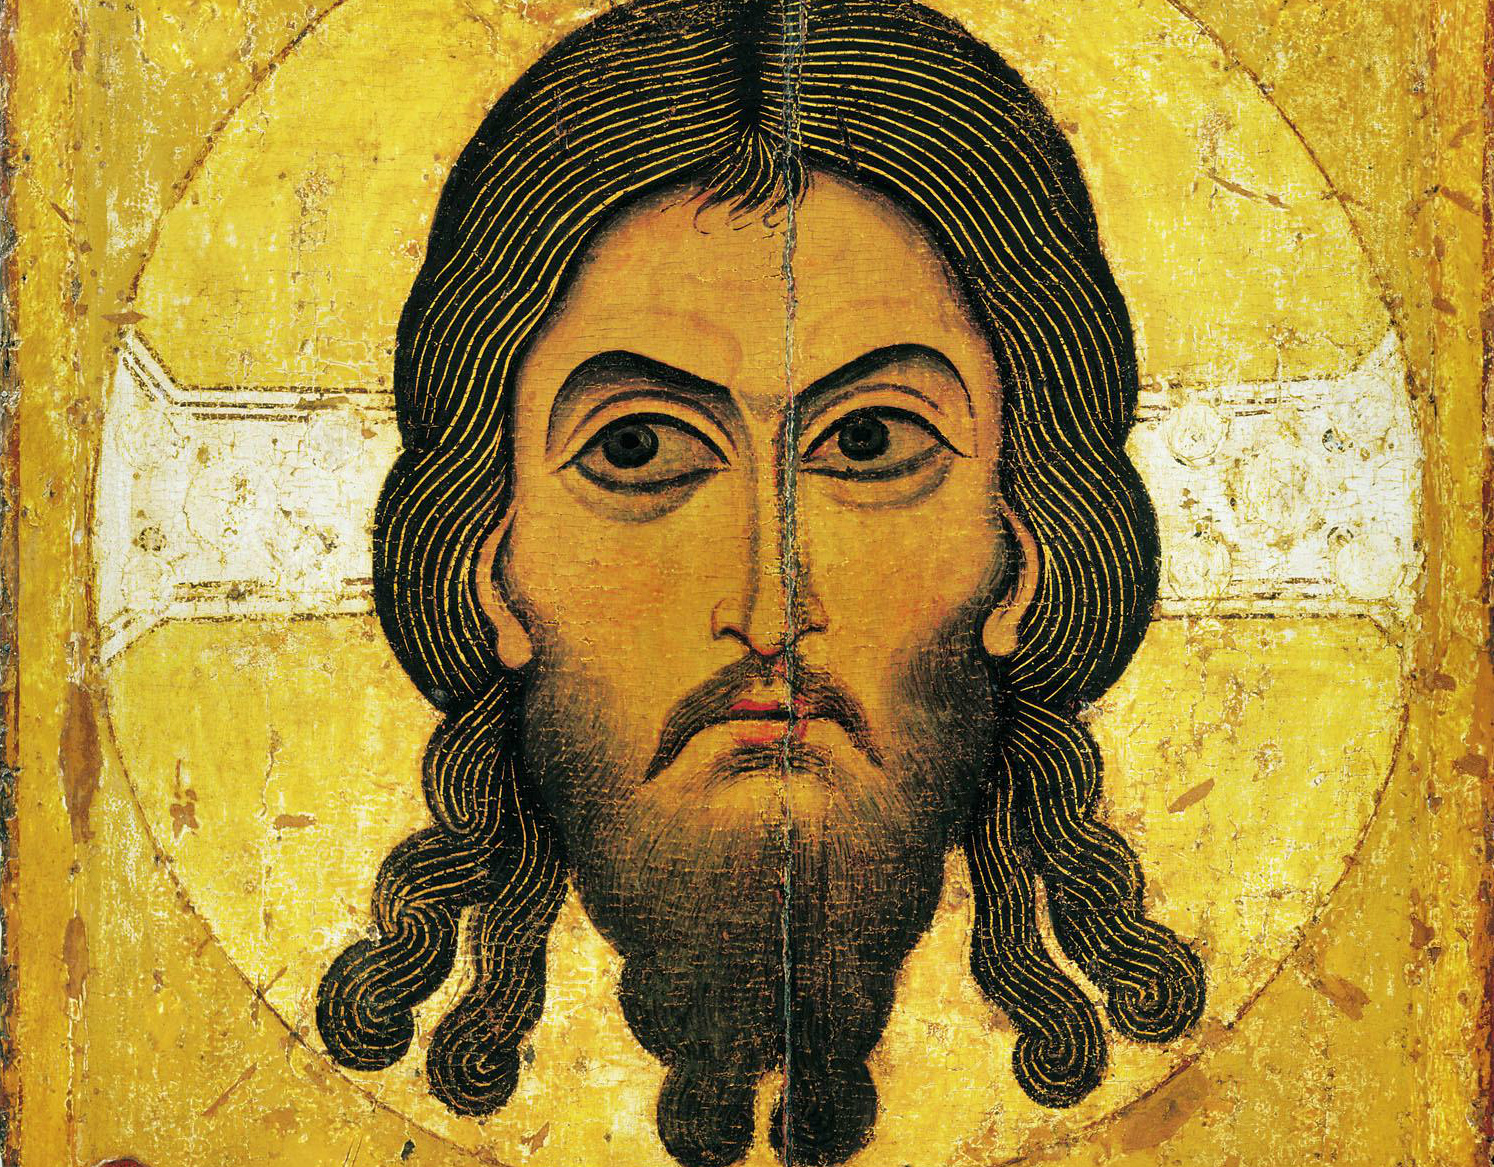 Christ Acheiropoietos (Made without hands). A 12th-century Novgorod icon from the Assumption Cathedral in the Moscow Kremlin